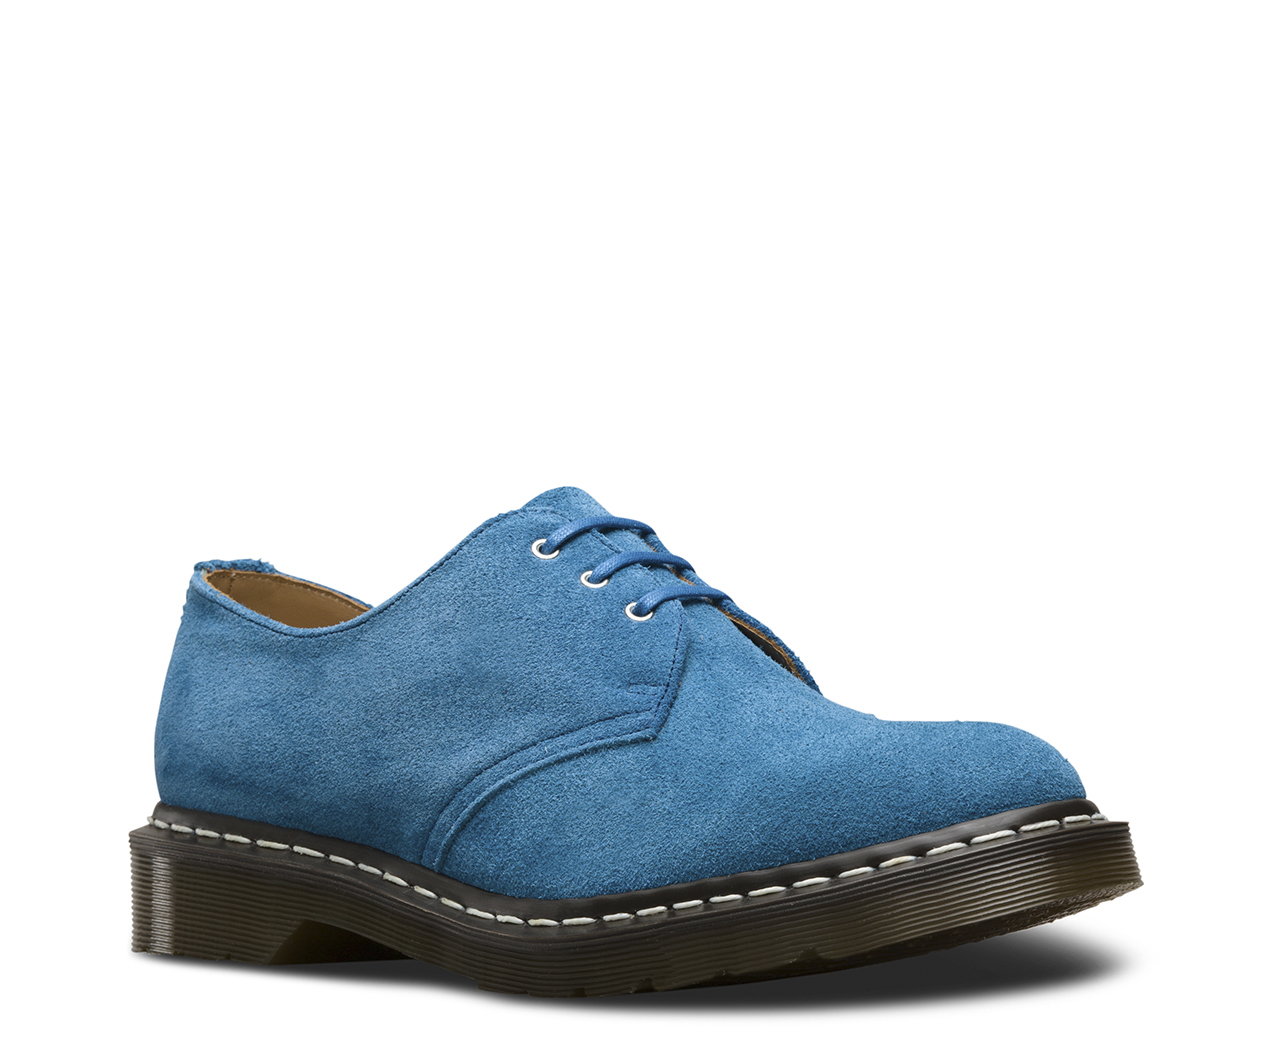 Vegan Suede Shoe Mens